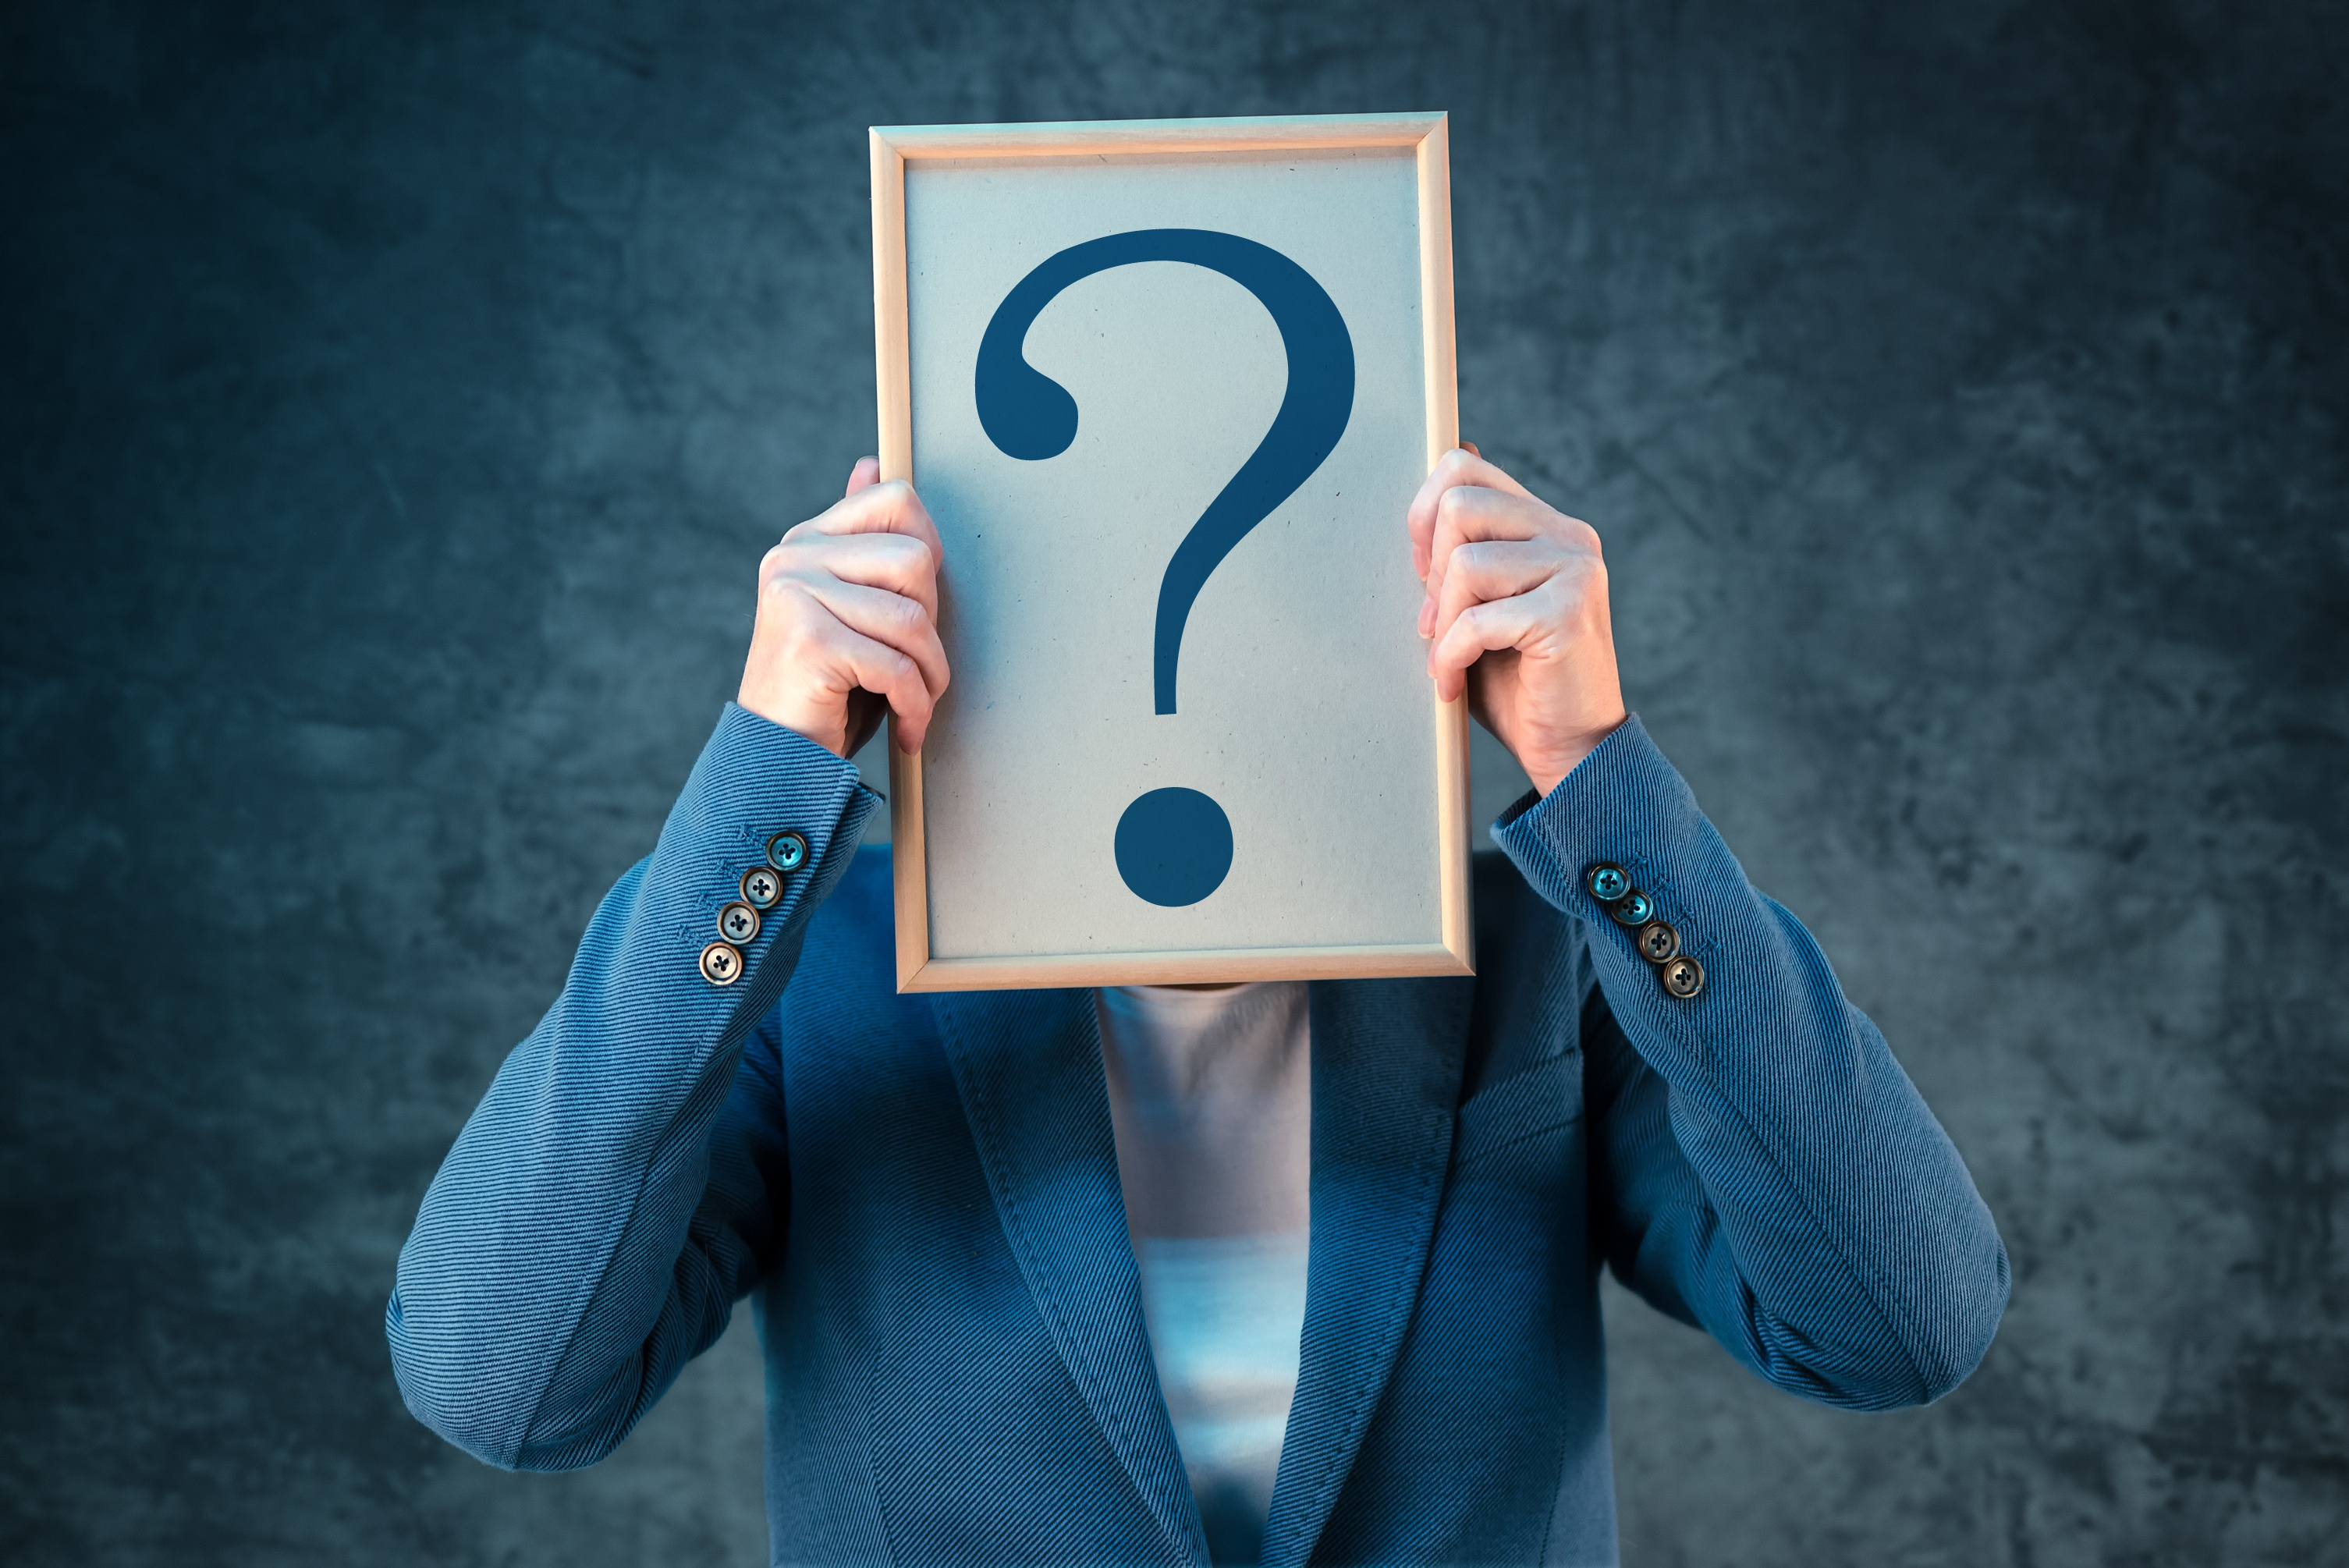 Person with an unknown personality type represented by a question mark